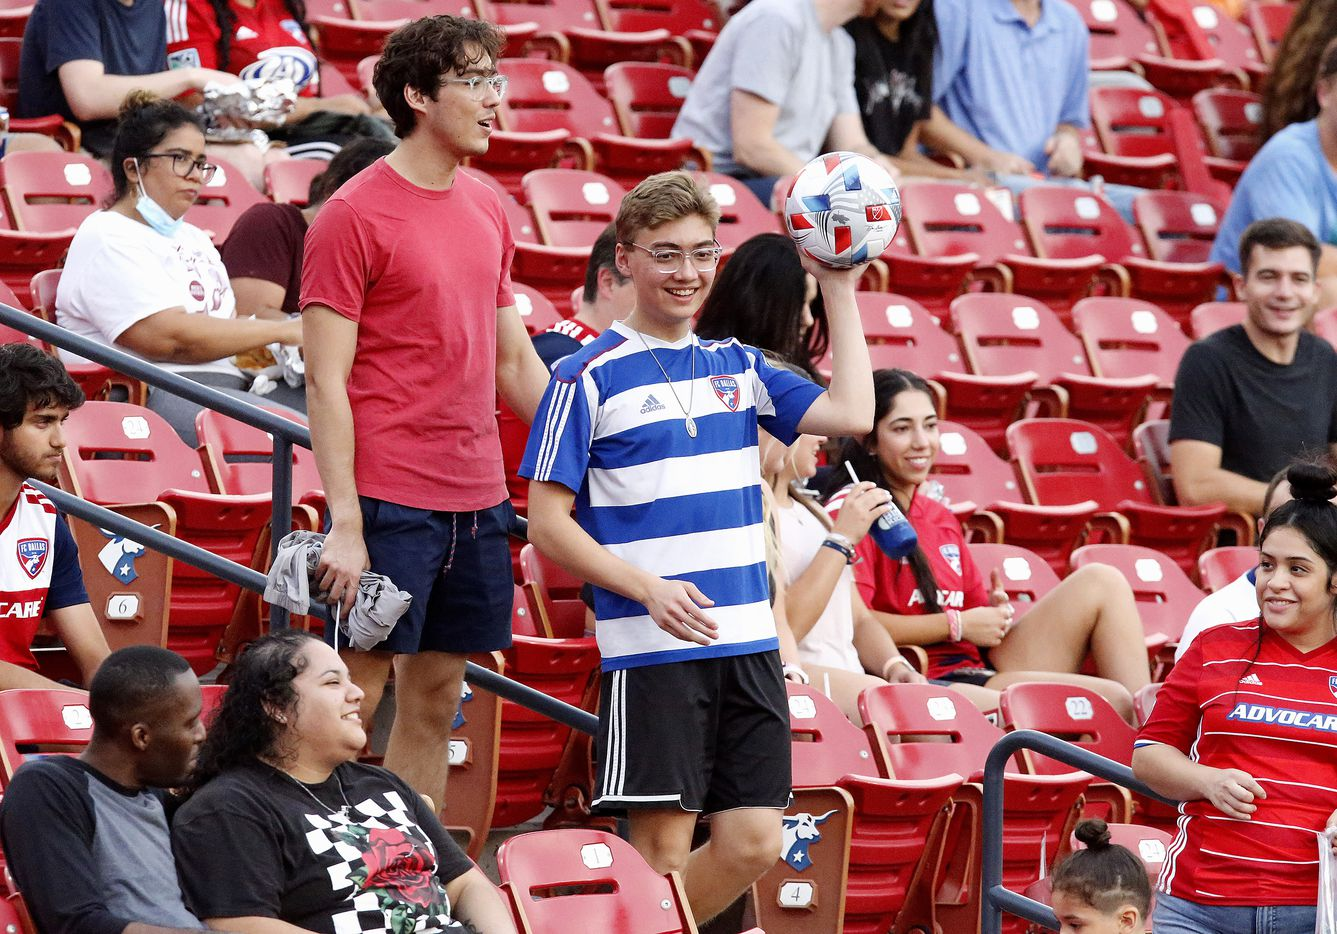 A fan winds up with an errant kick and tosses the ball back to the pitch during the first half as FC Dallas hosted the Seattle Sounders at Toyota Stadium in Frisco on Wednesday night, August 18, 2021. (Stewart F. House/Special Contributor)